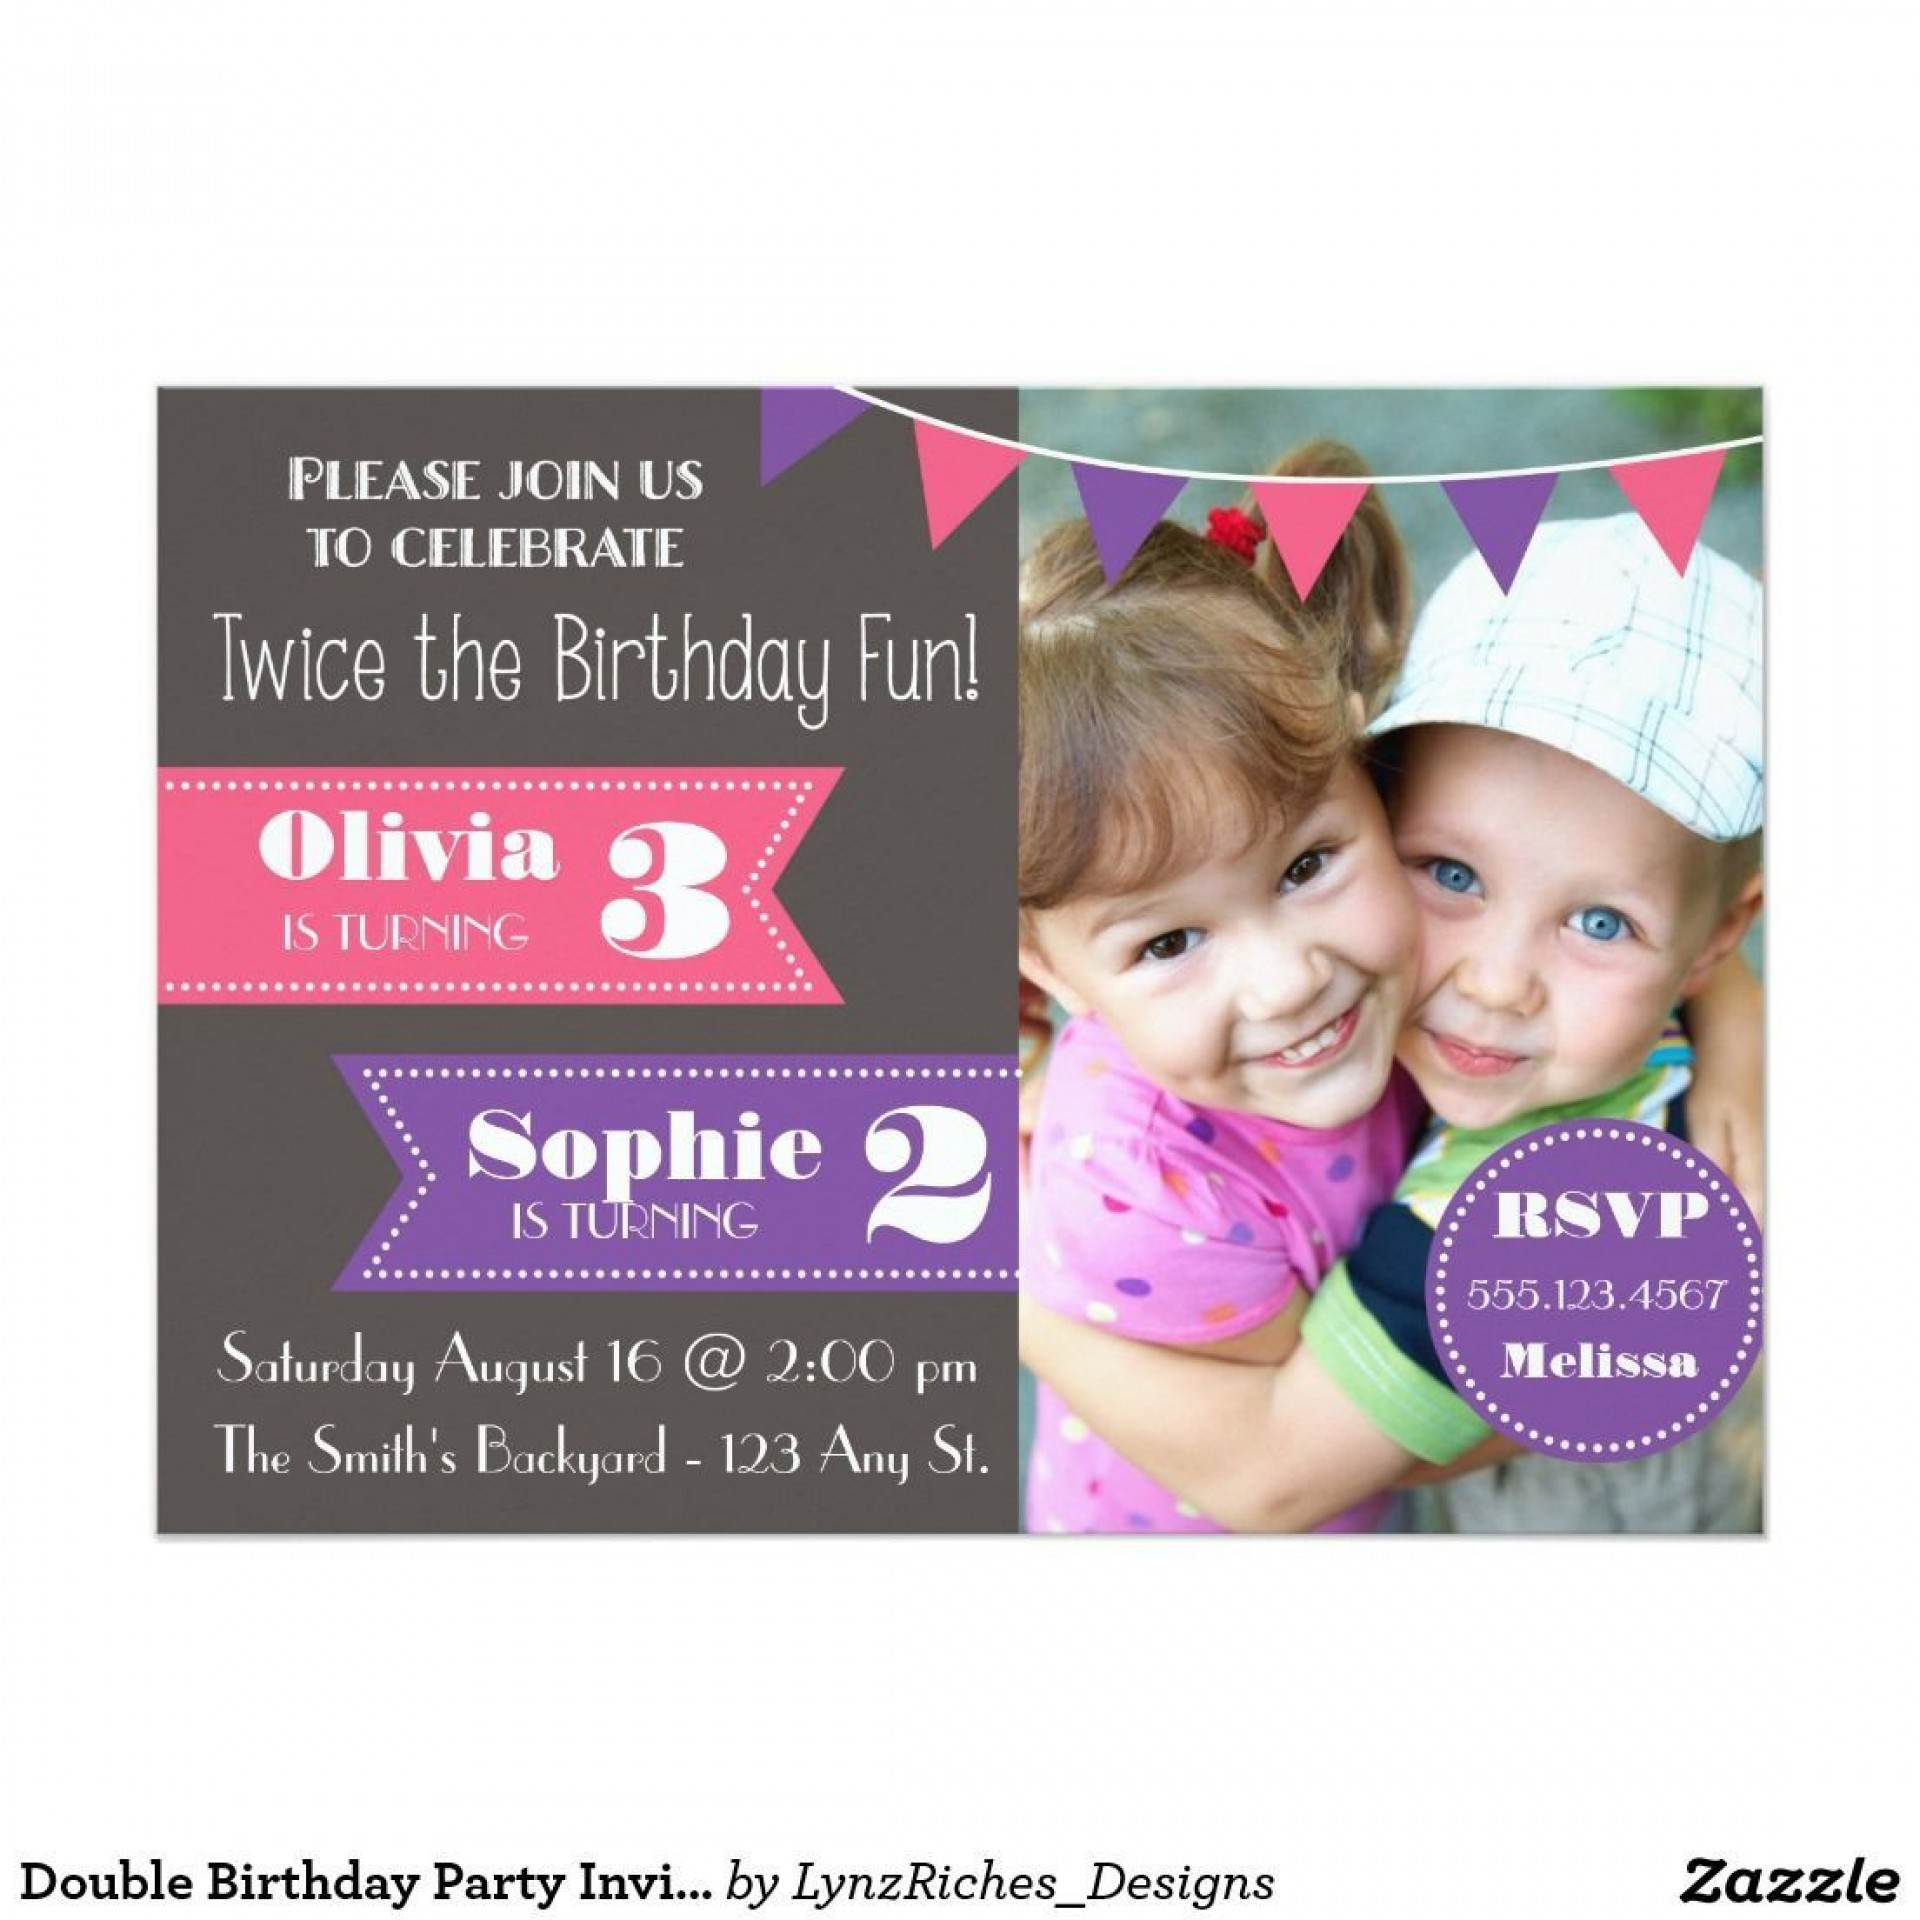 006 Beautiful Birthday Invitation Wording Sample 5 Year Old Highest Clarity 1920